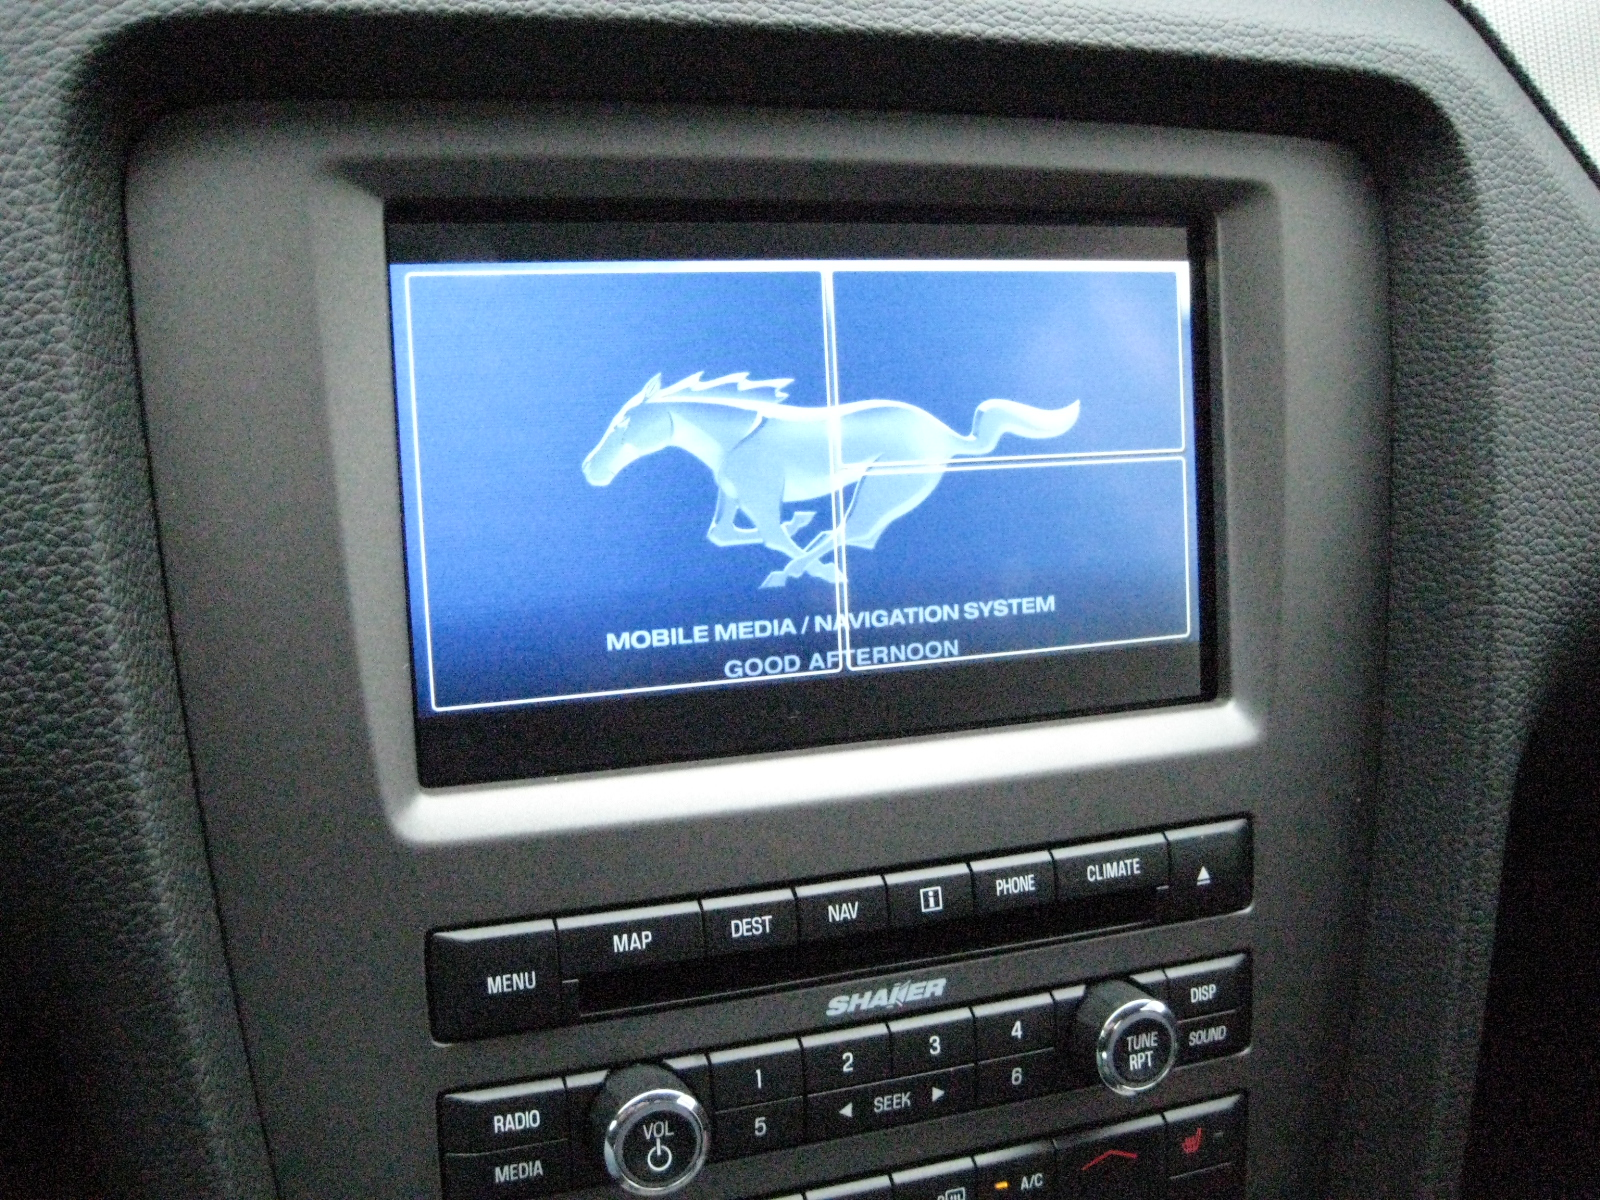 2010 mustang gt navigation screen